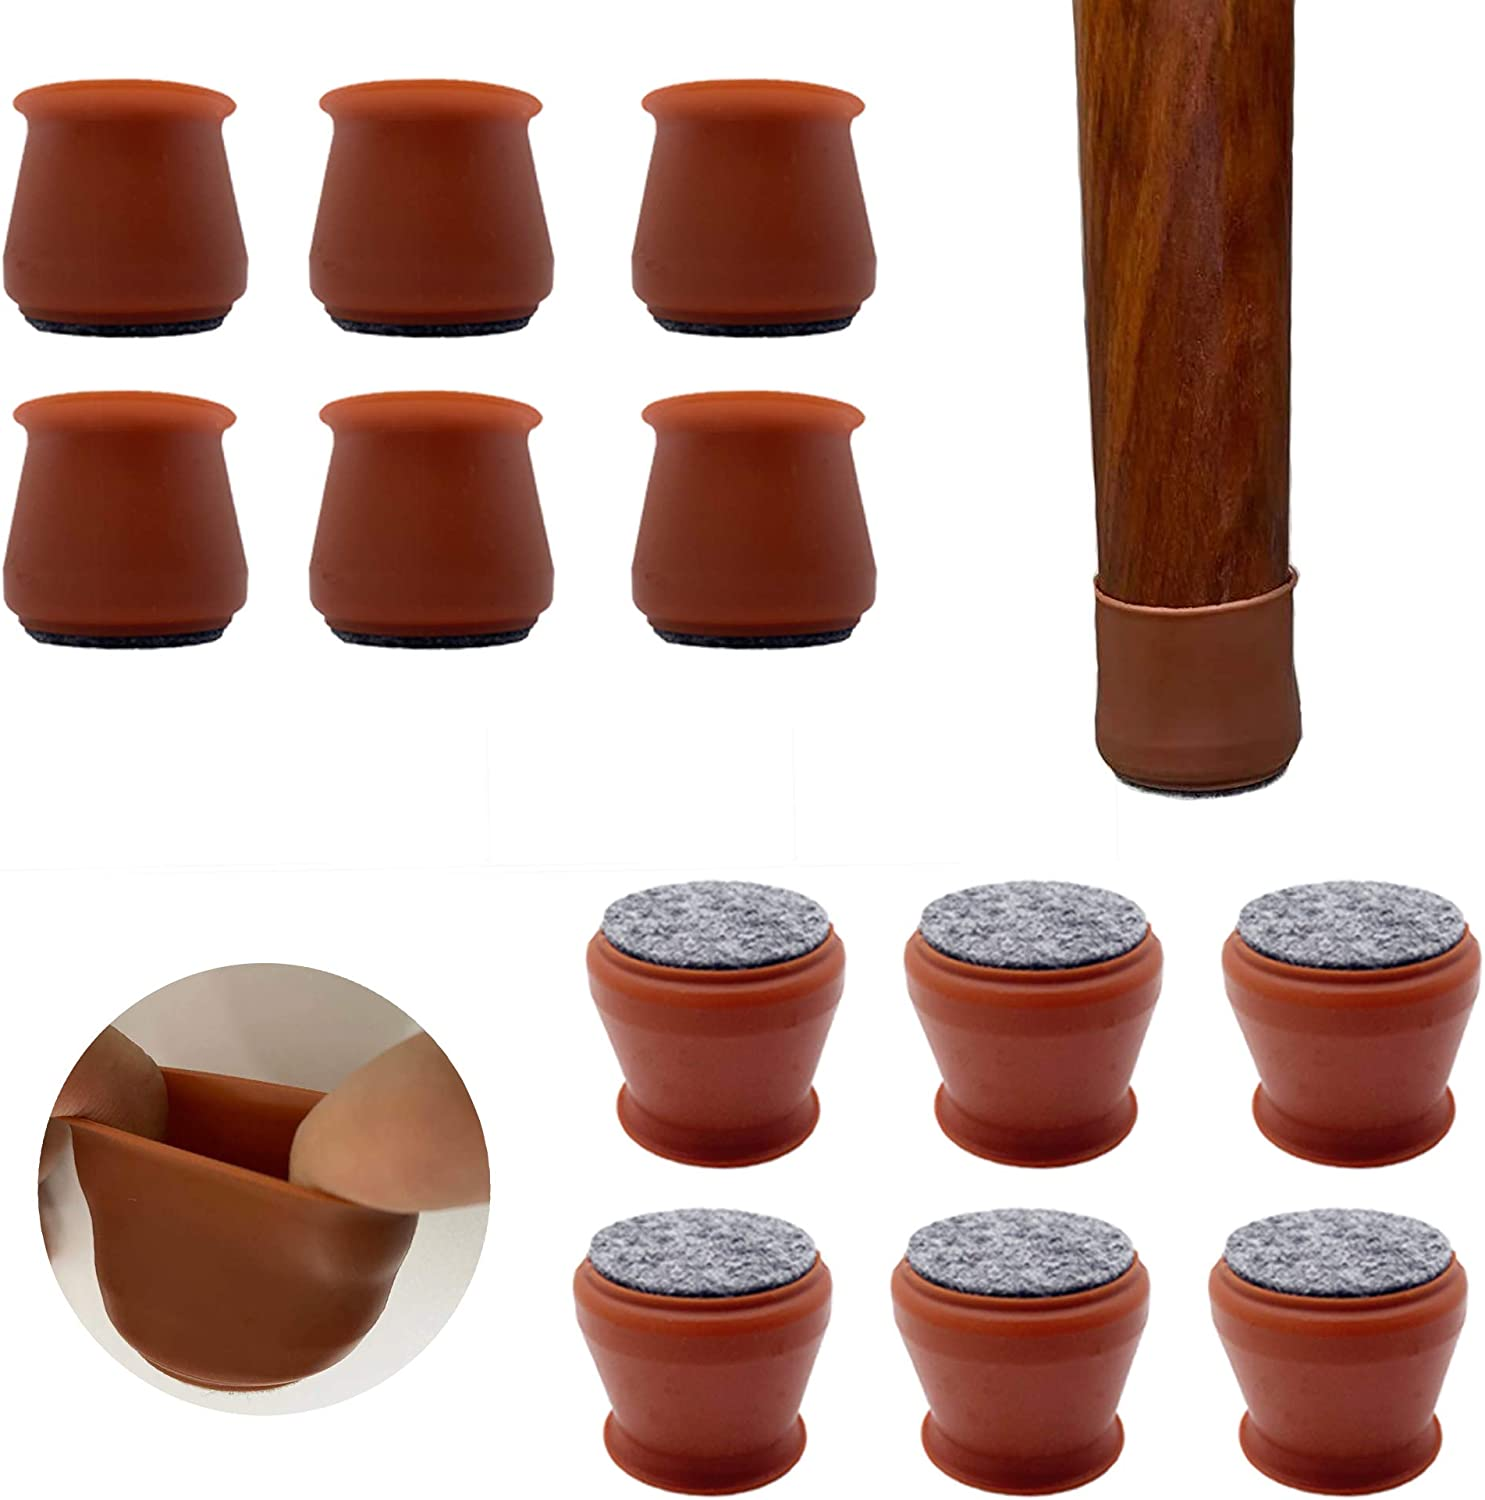 Upgraded 36 PCS Chair Leg Caps with Felt Bottom|Round&Square Silicone Chair Leg Covers for Mute Furniture Moving|Elastic Furniture Silicone Protection Cover to Prevent Scratches. (Coffee)